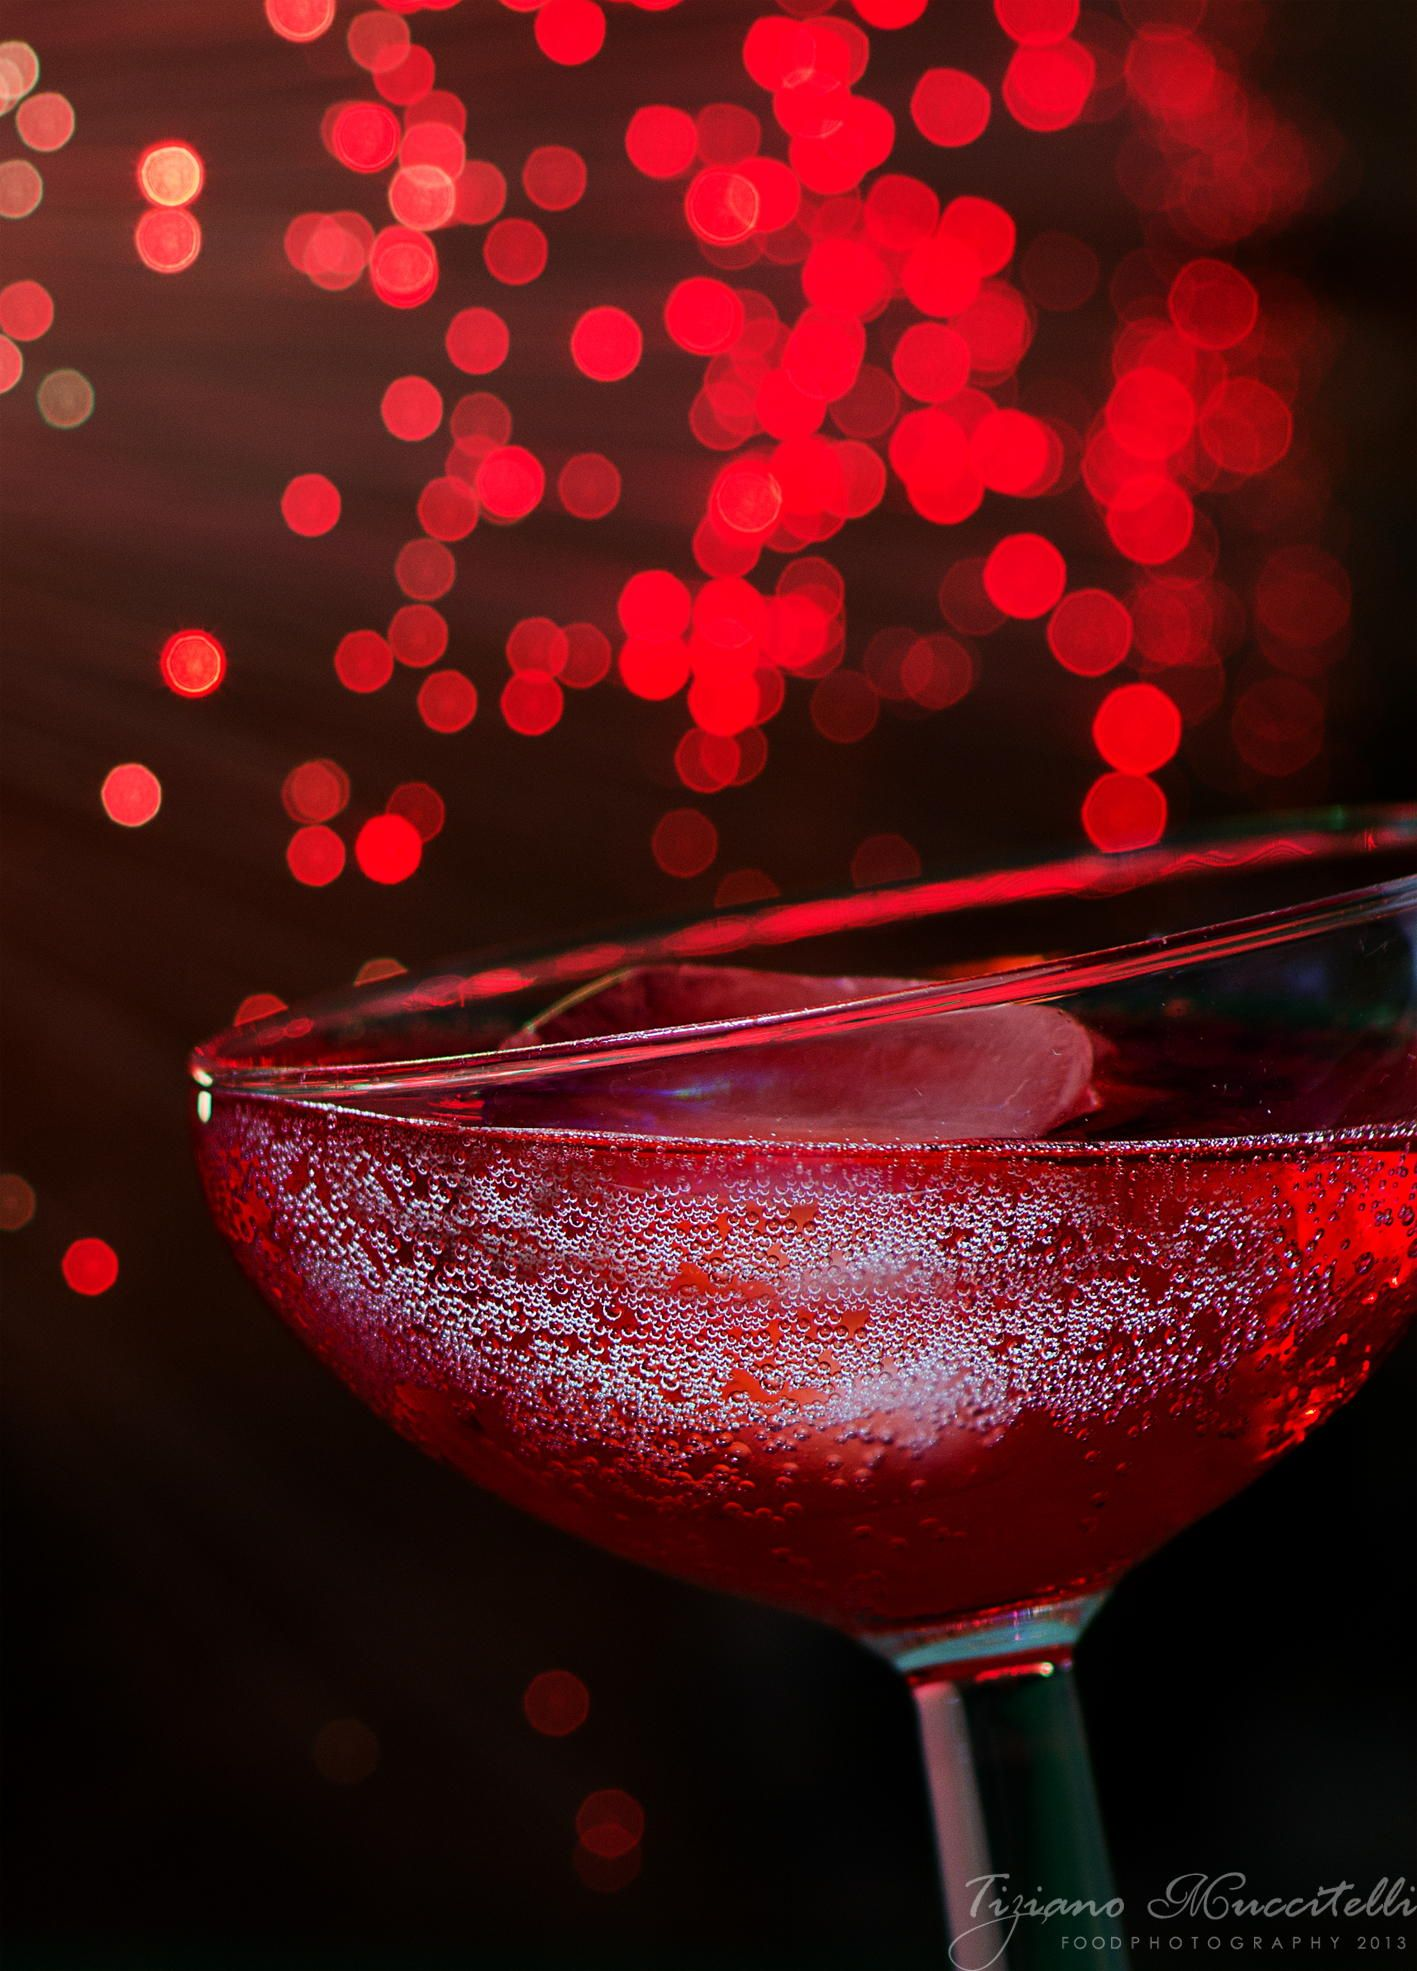 Red champagne...with ice by Chef Tiziano Muccitelli on 500px